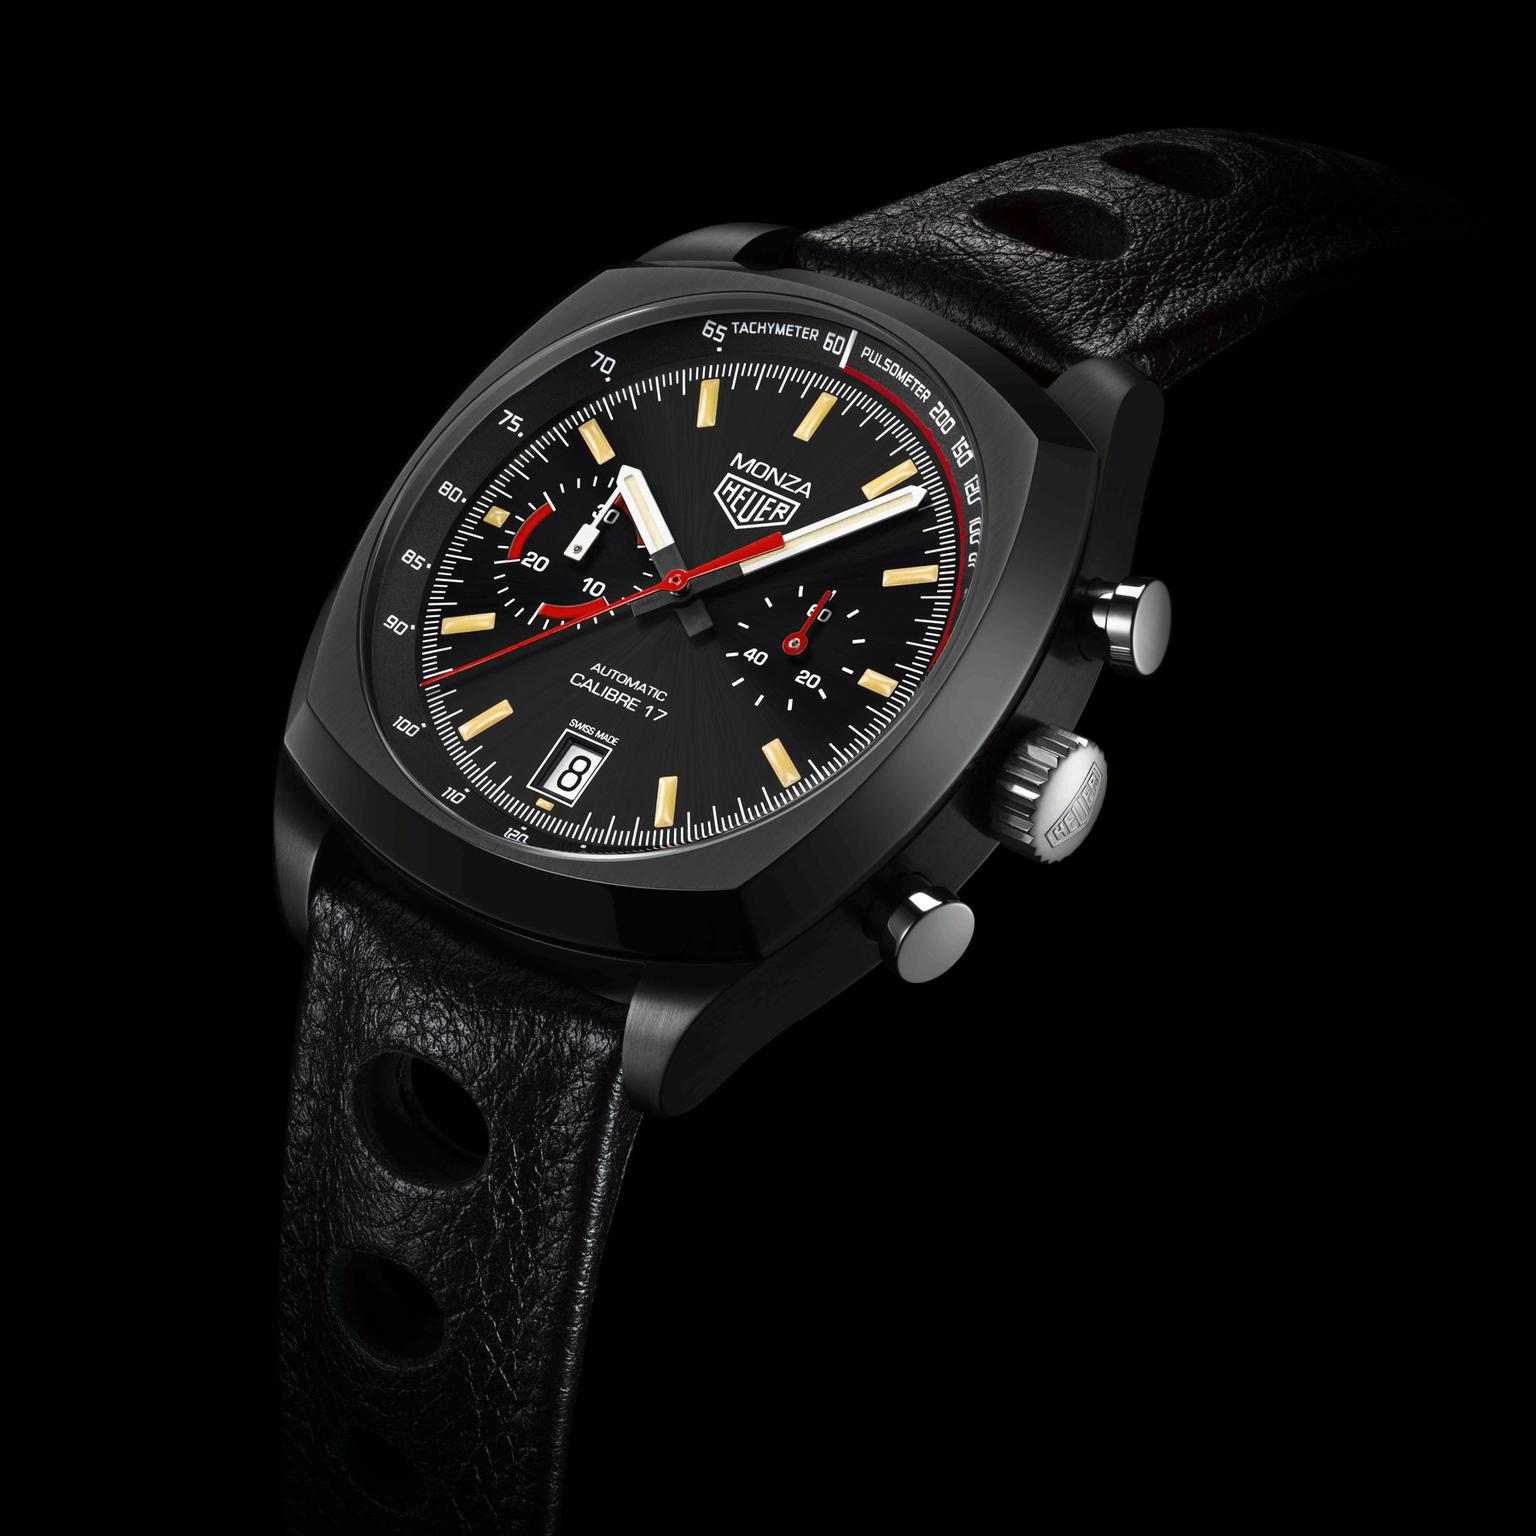 watch hyperchrome of tachymeter cases pioneer close ceramic up in baselworld with sjx the at first brown for unveiled use chocolate its rado a by watches